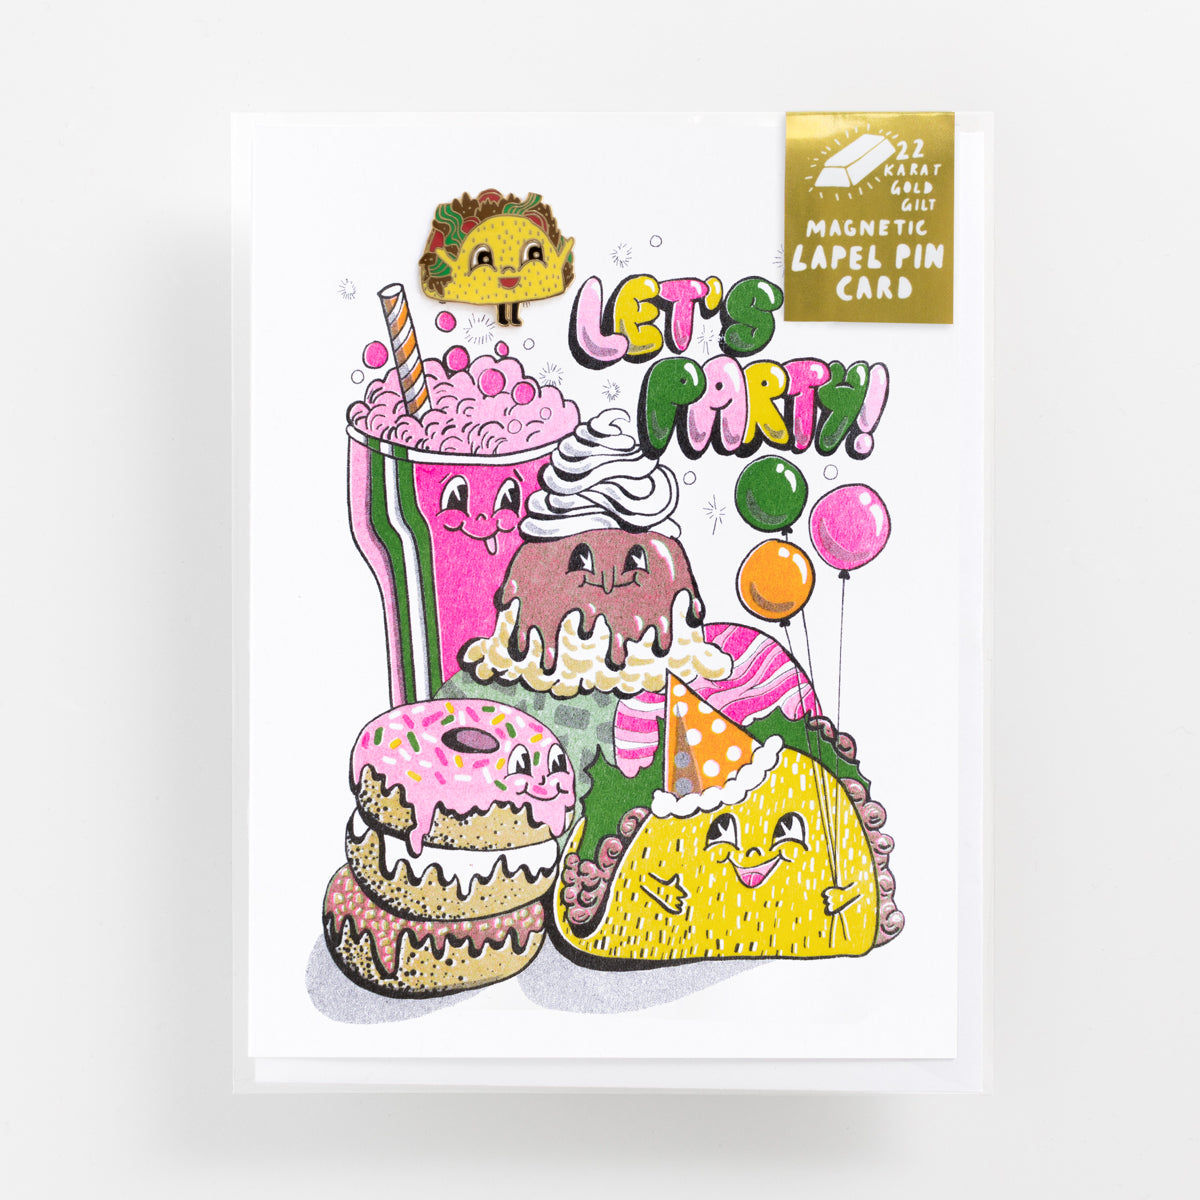 Let's Party - Lapel Pin Card